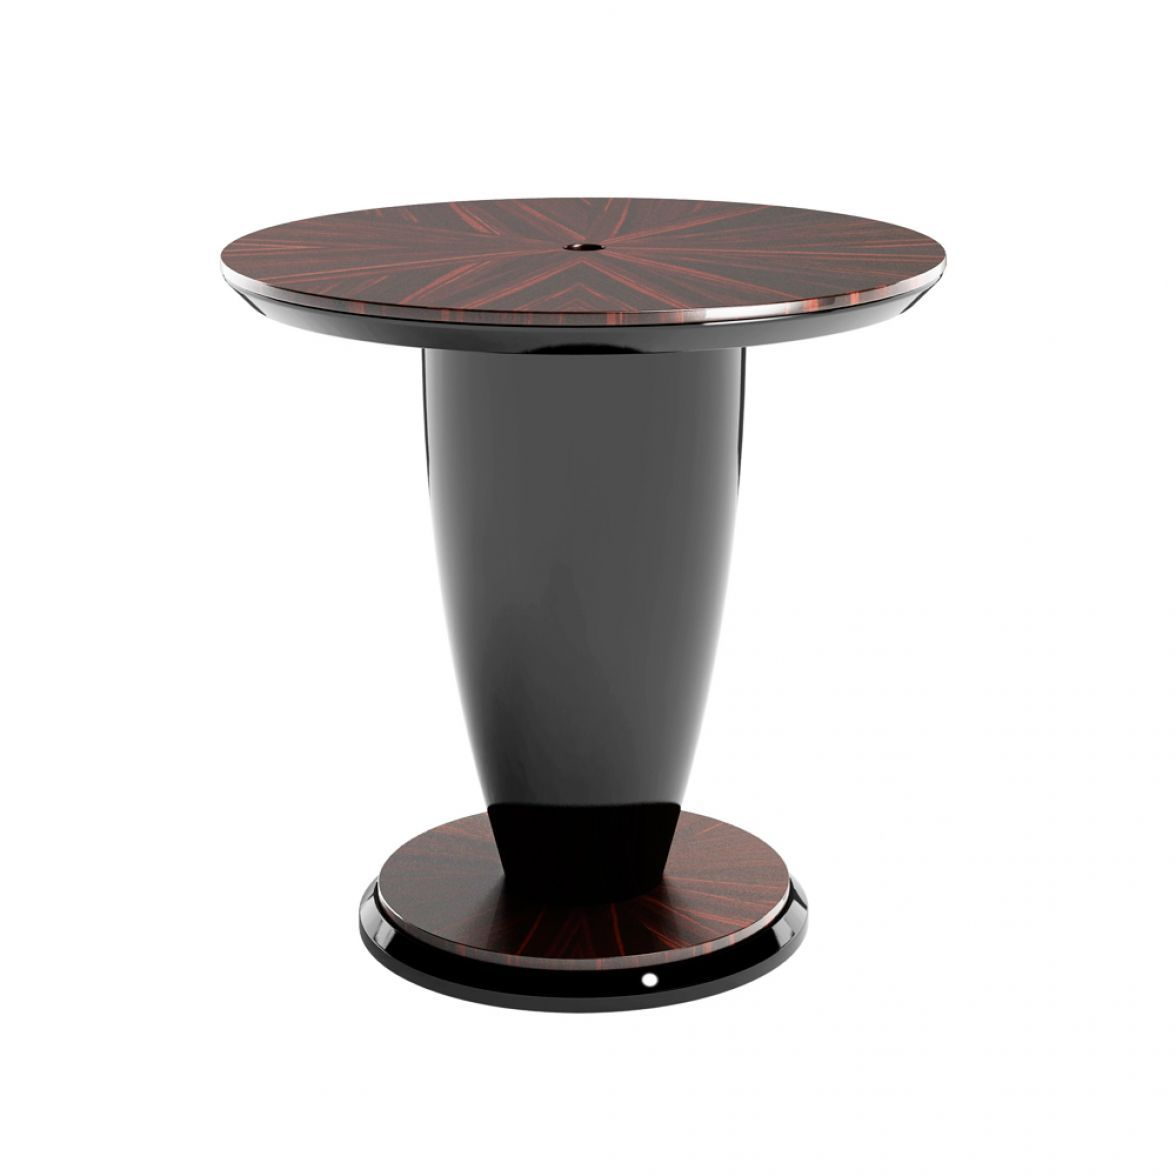 Kongo coffee table